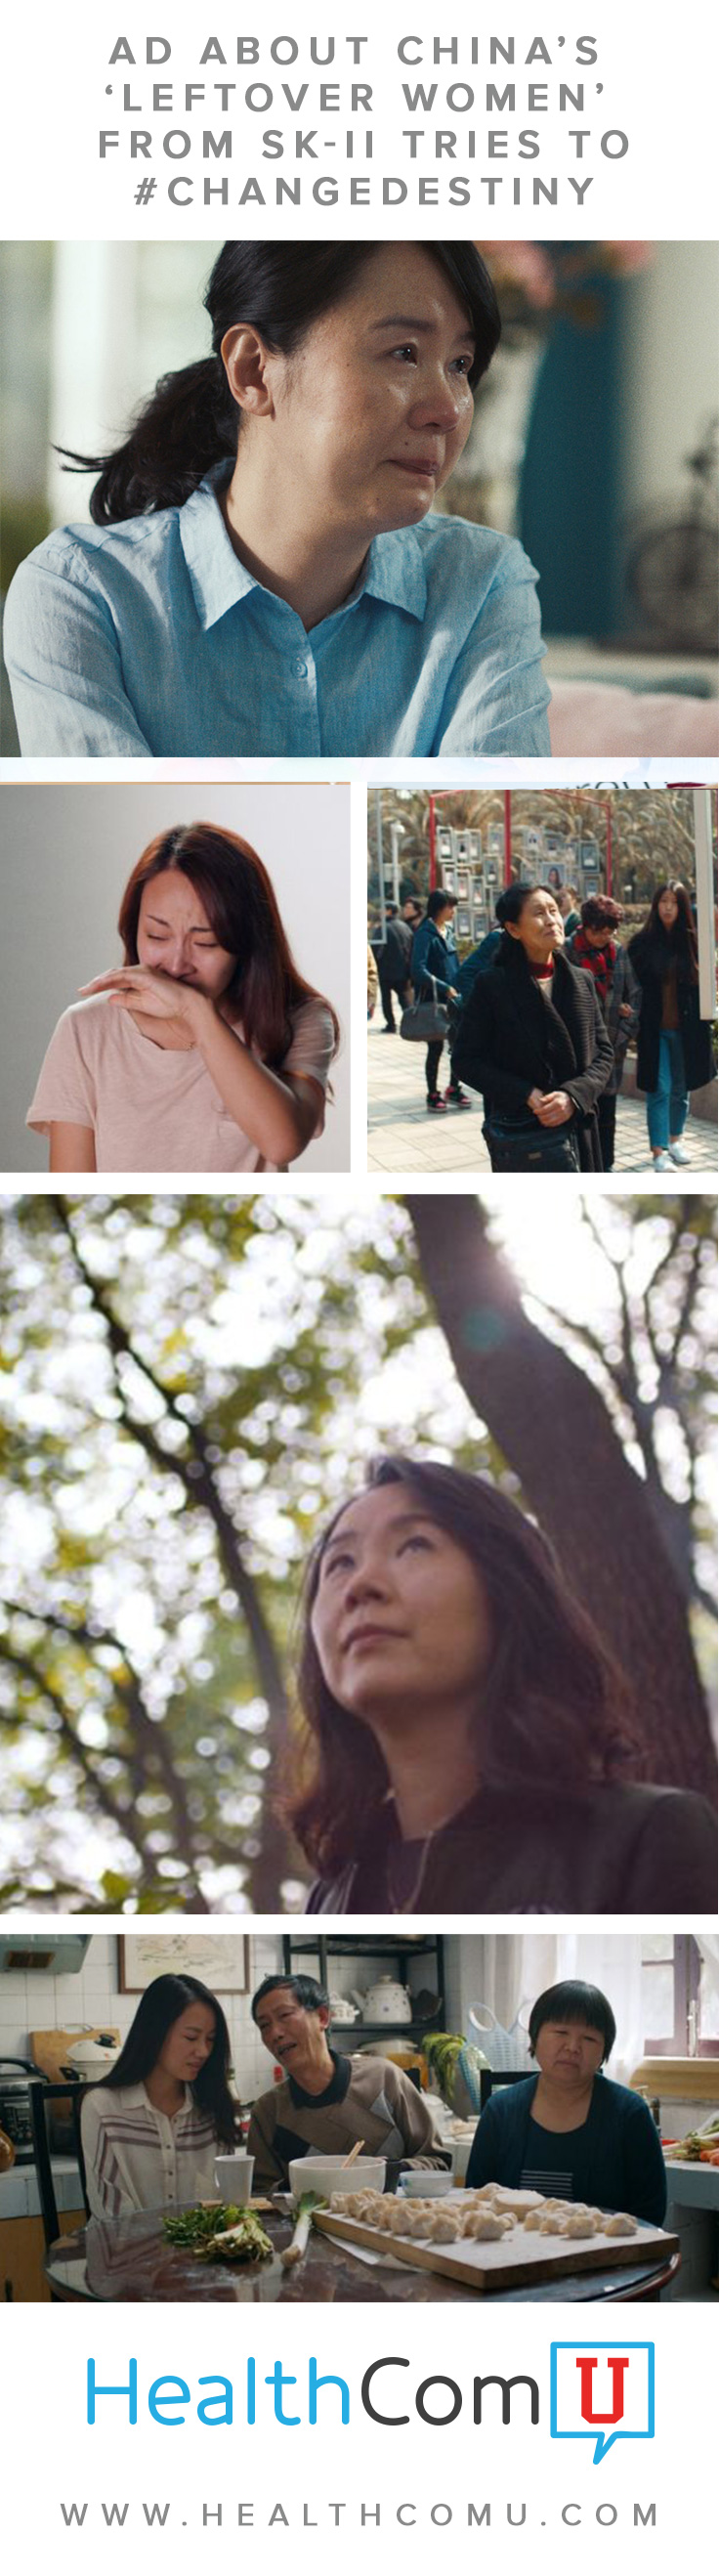 Ad about China's 'Leftover Women' from SK-II tries to #ChangeDestiny